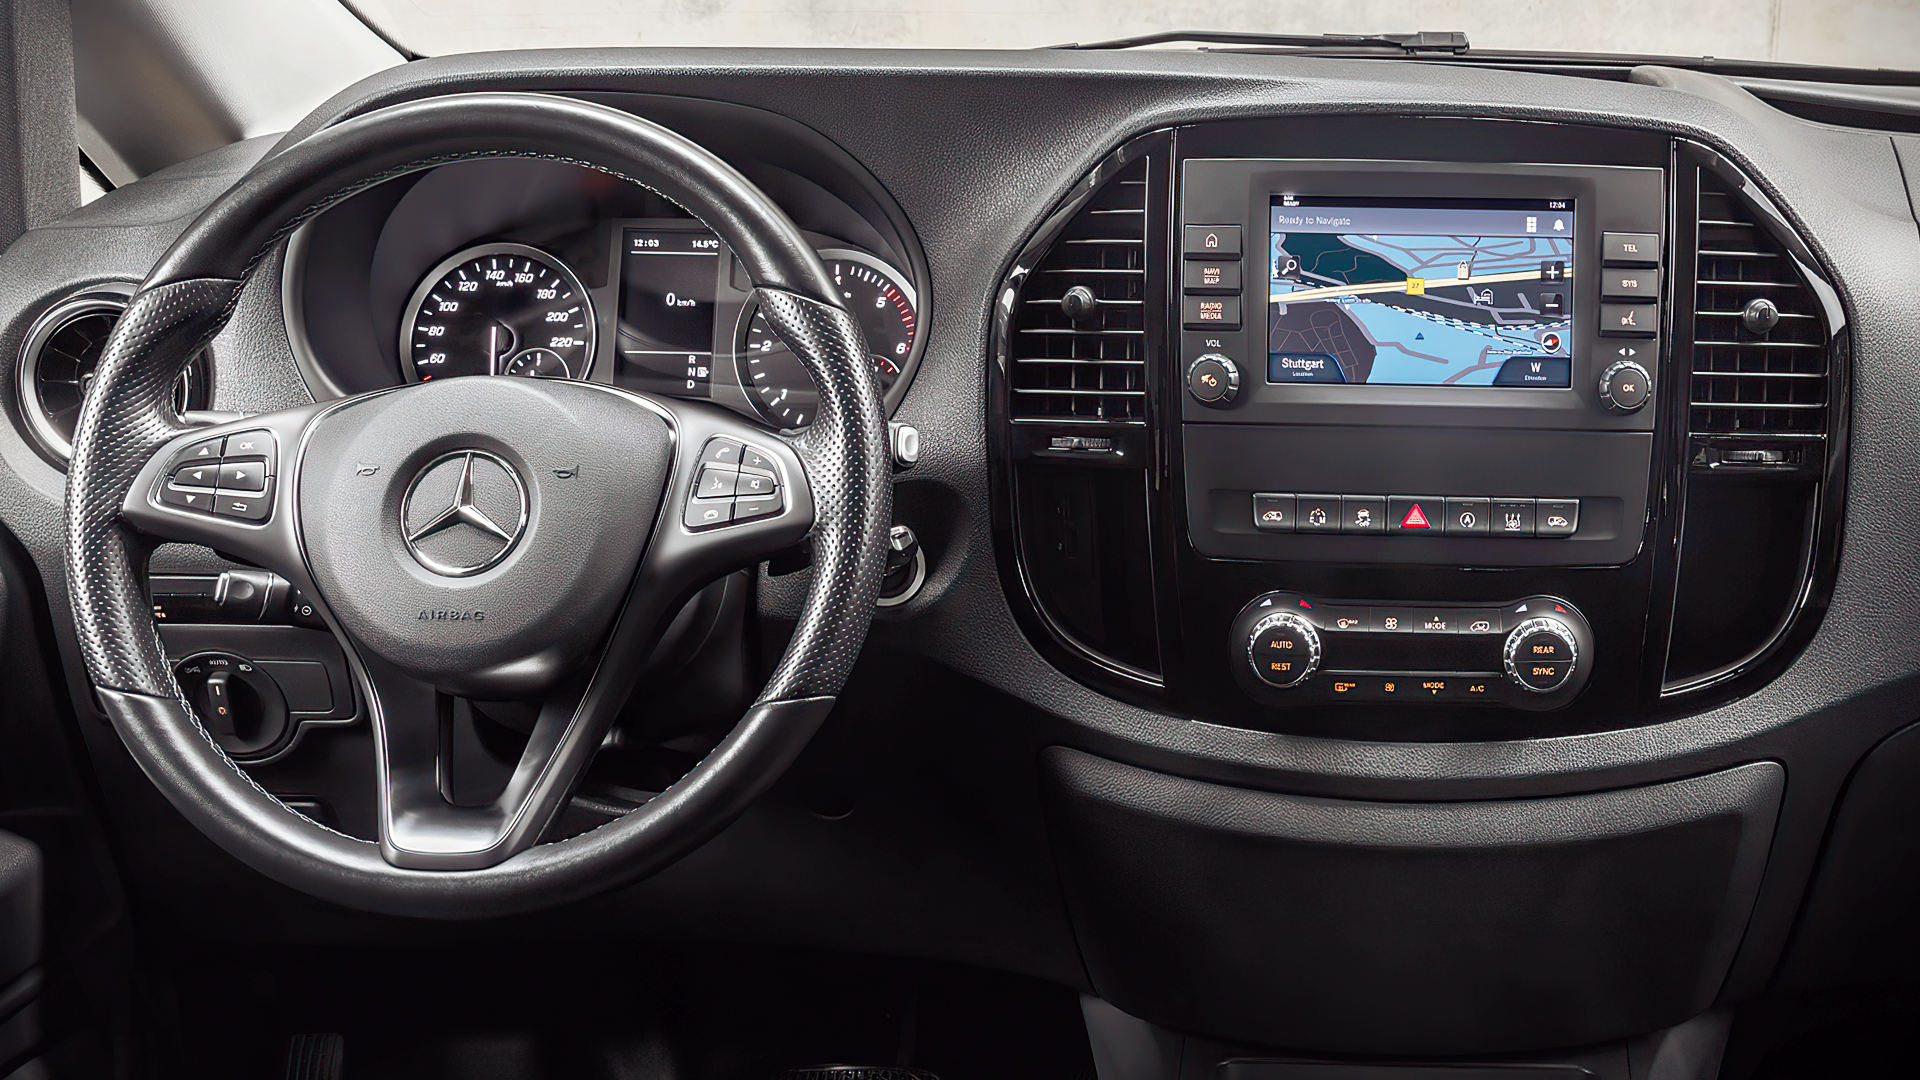 Mercedes Benz Vito 2021 Interior Wallpaper